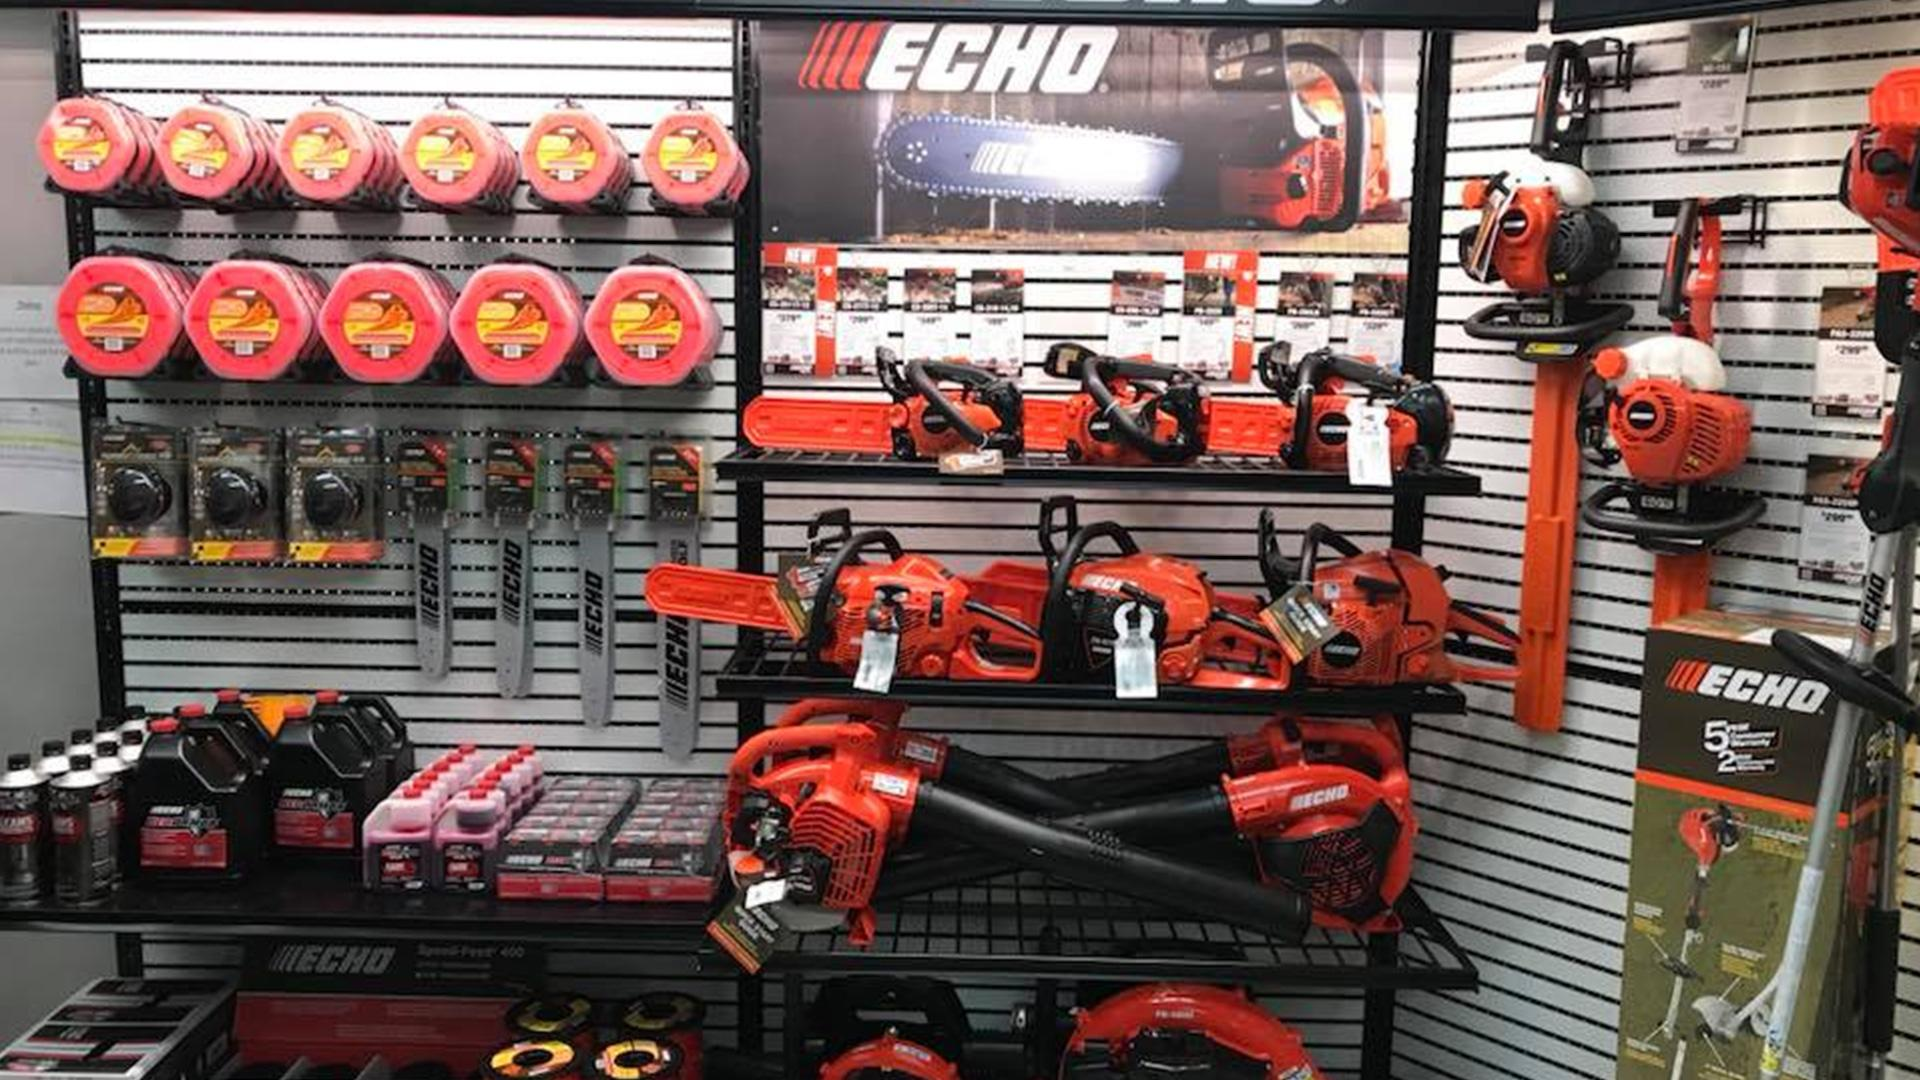 ECHO POWER EQUIPMENT